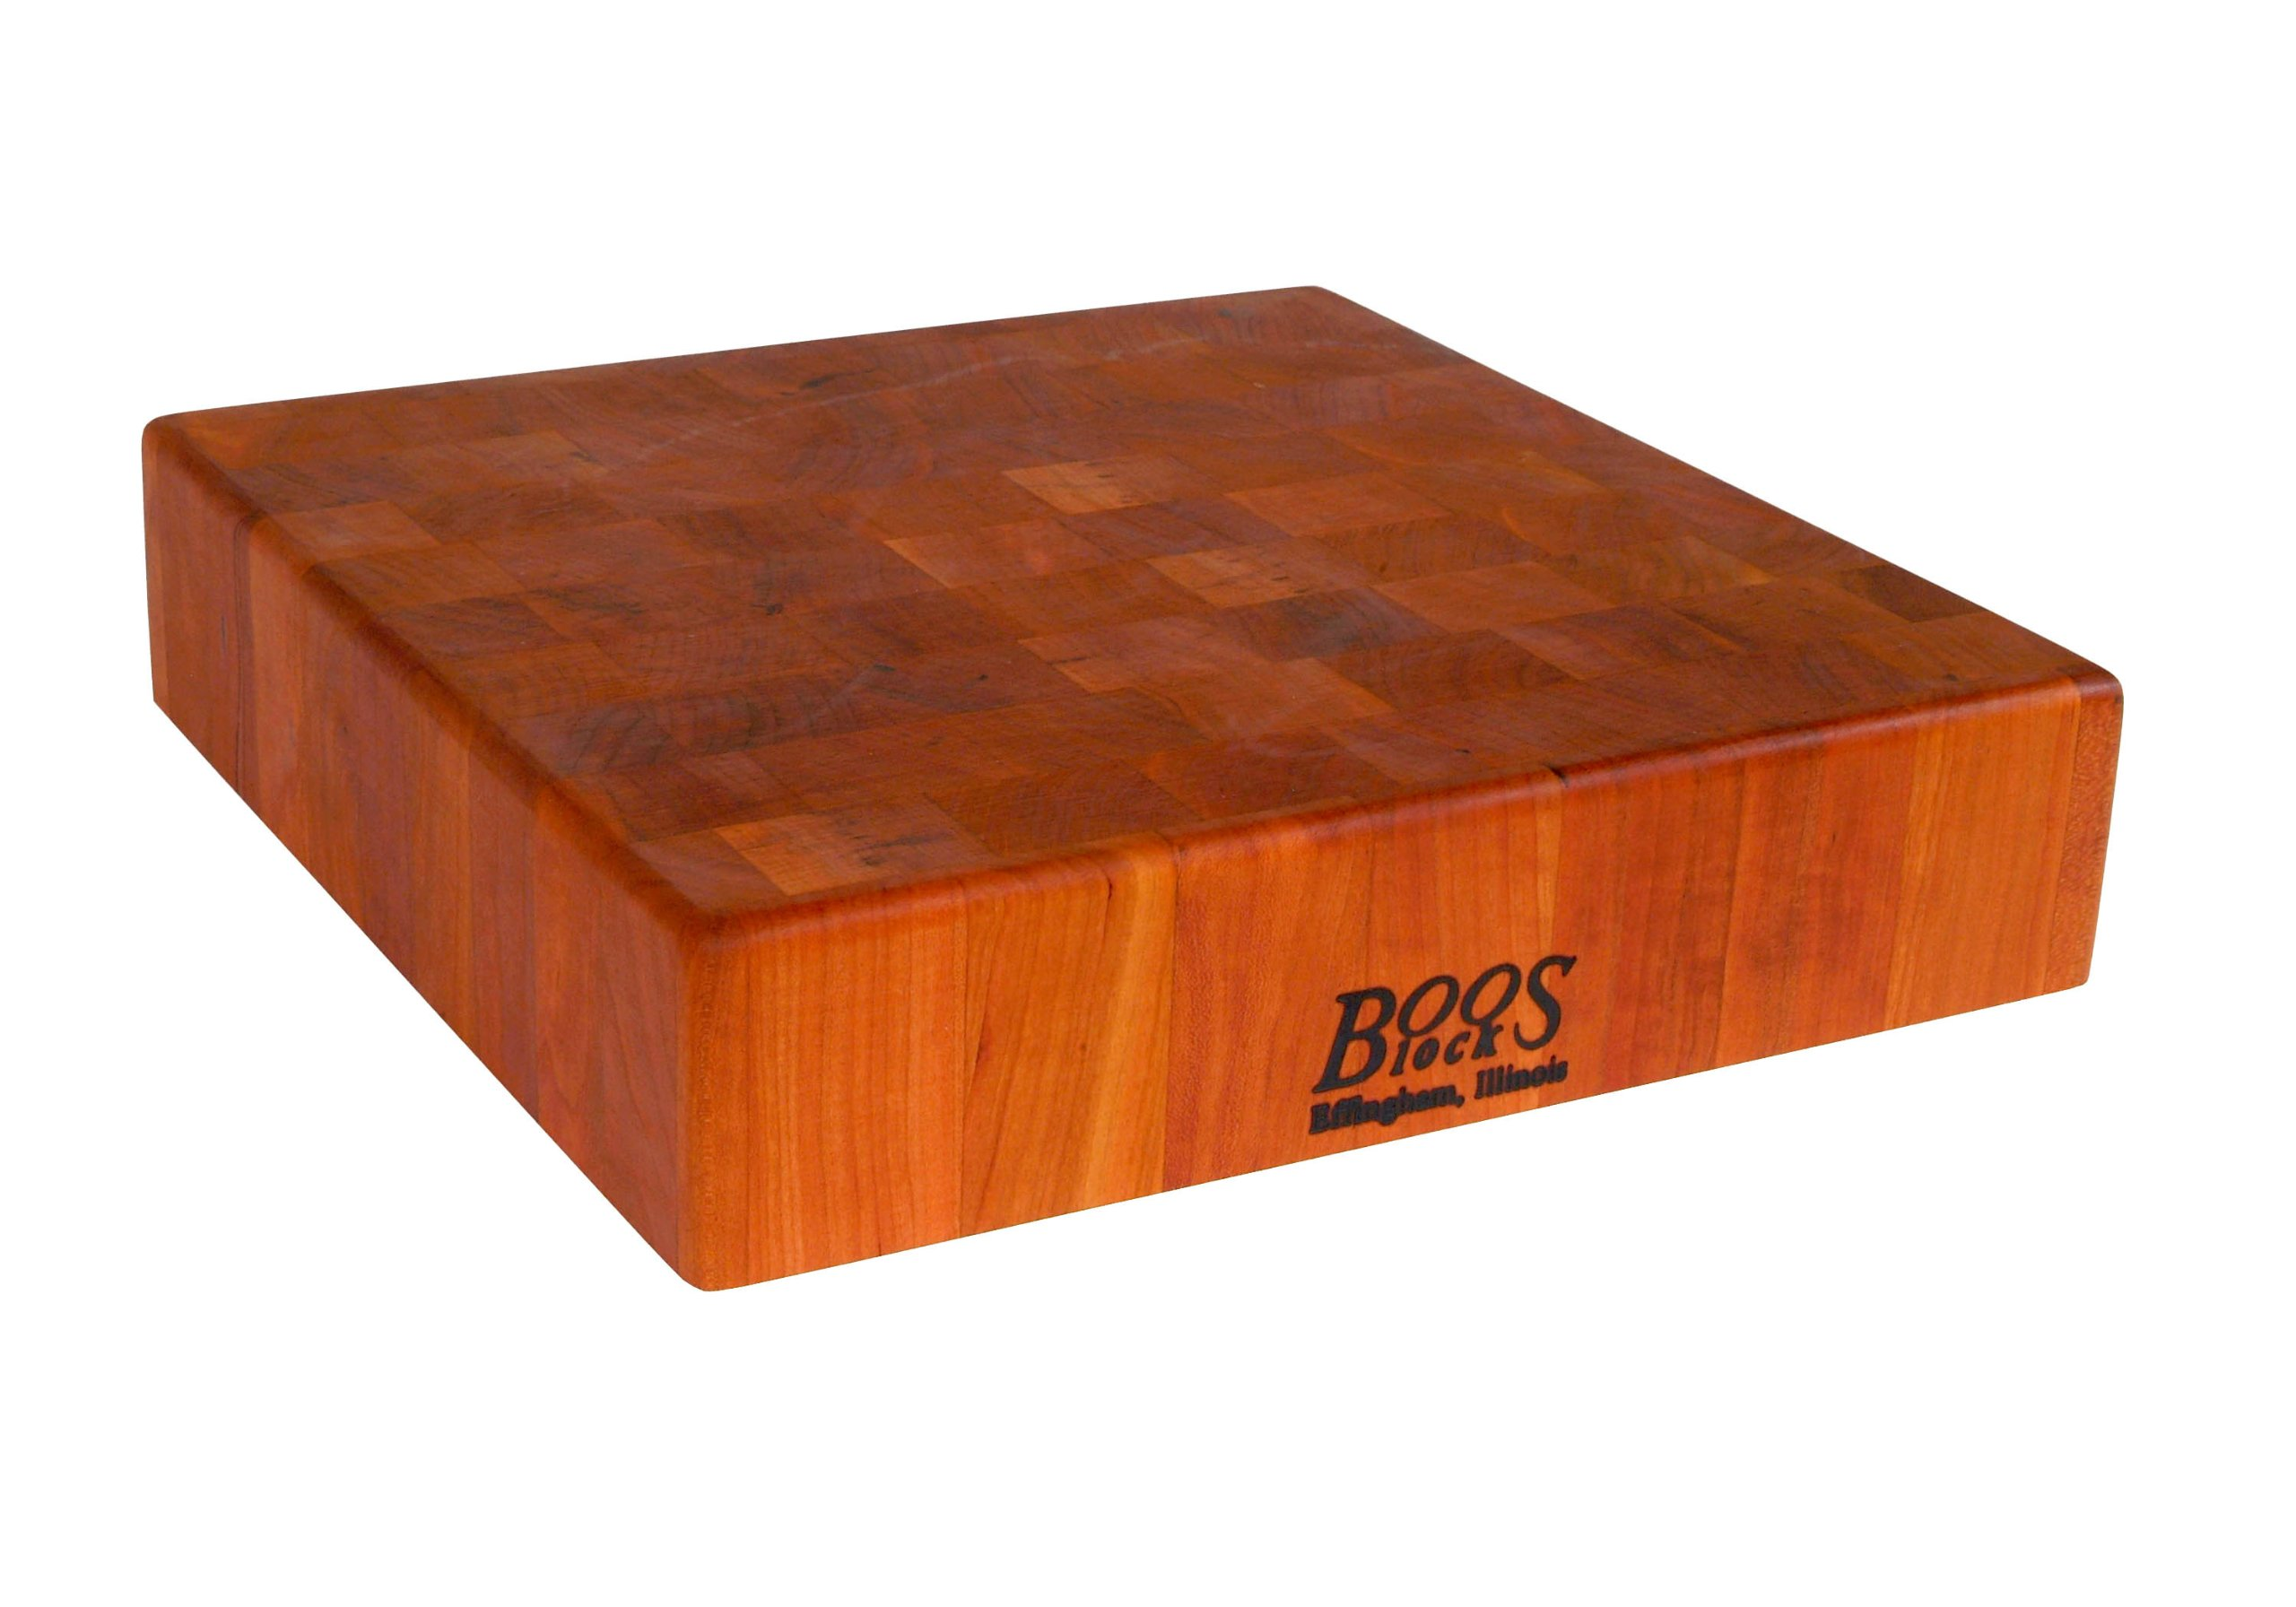 john-boos-cherry-wood-end grain-butcher-block-best-wood-cutting-boards-reviews